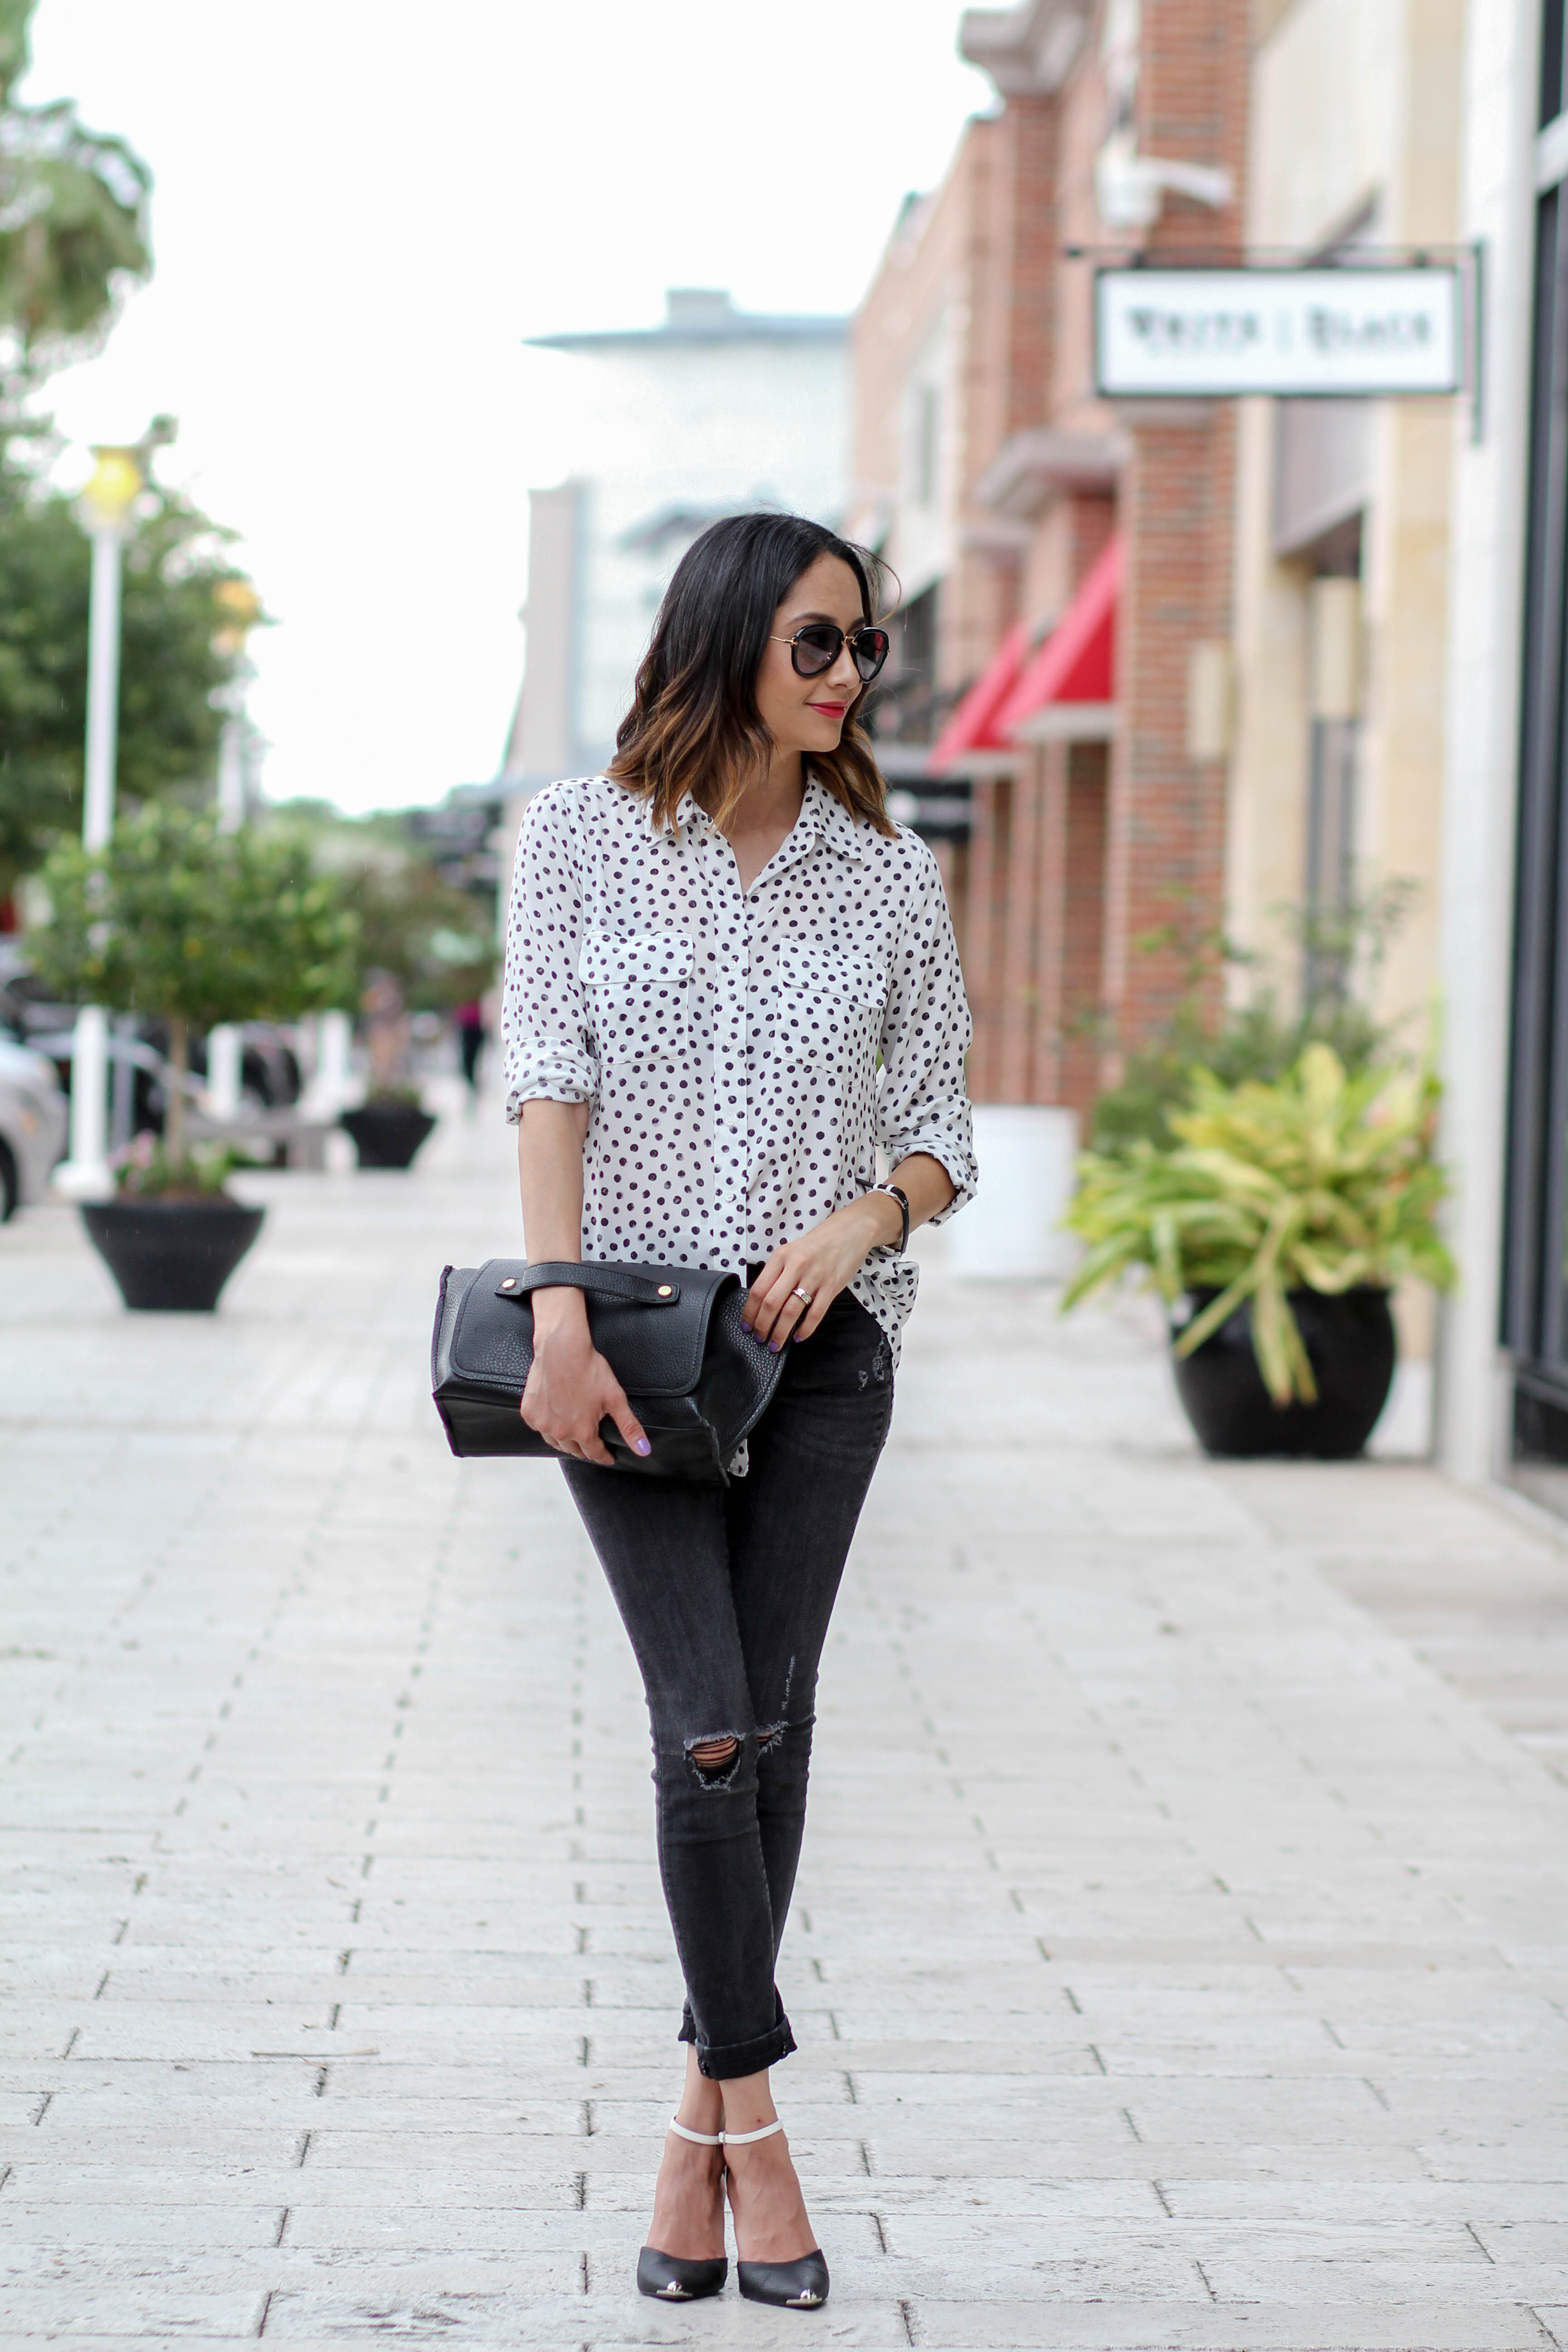 Casual Office Look | Polka Dotted Top | Black and White Look